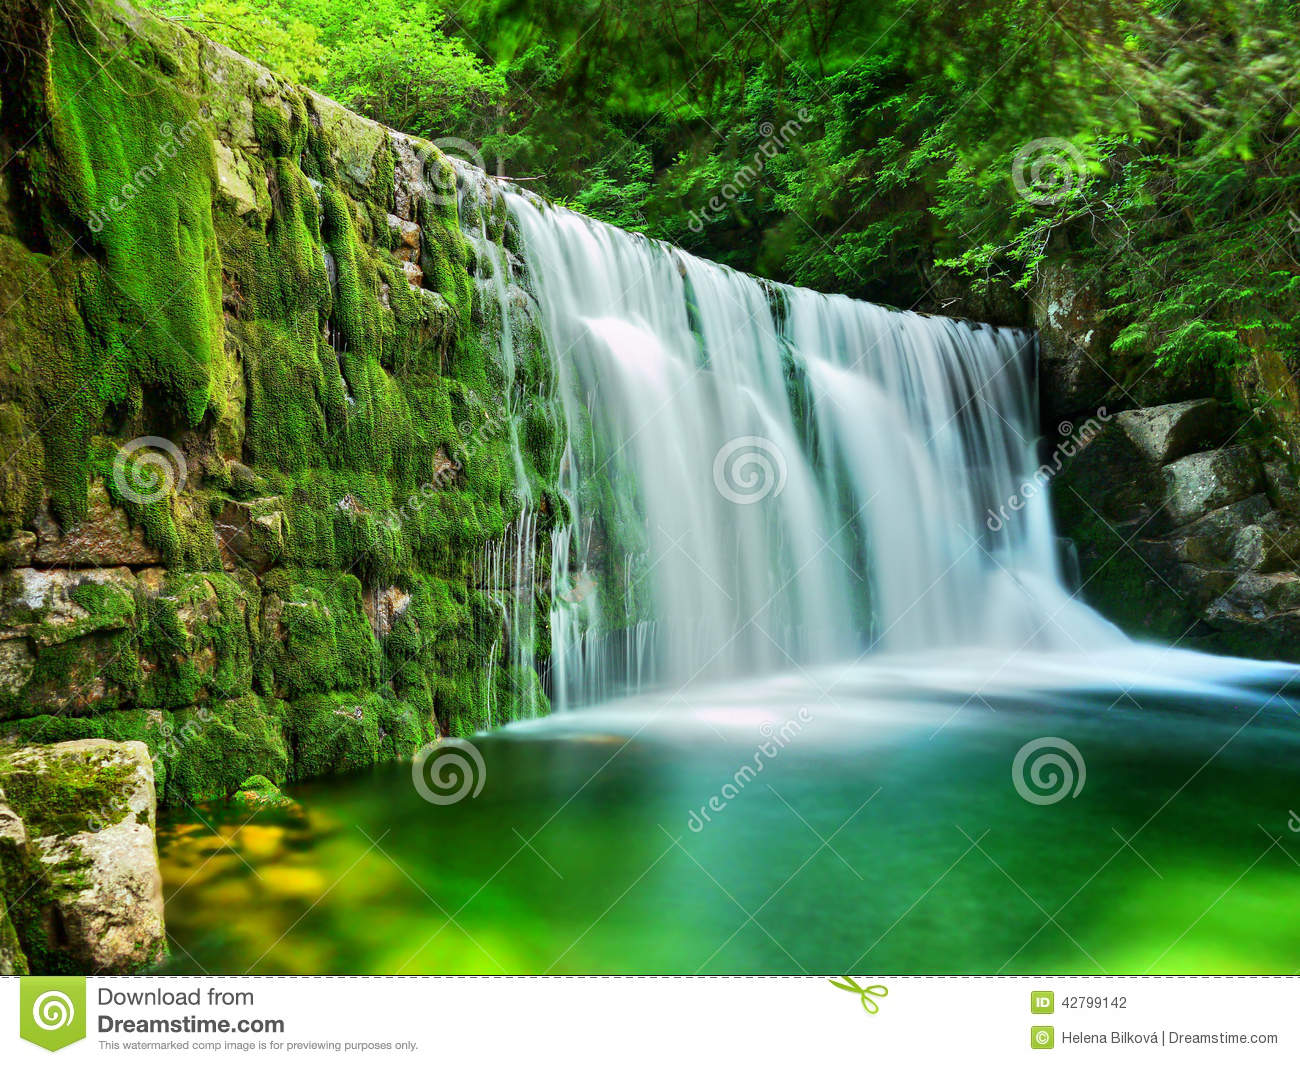 Lake Emerald Waterfalls Forest Landscape Stock Image of